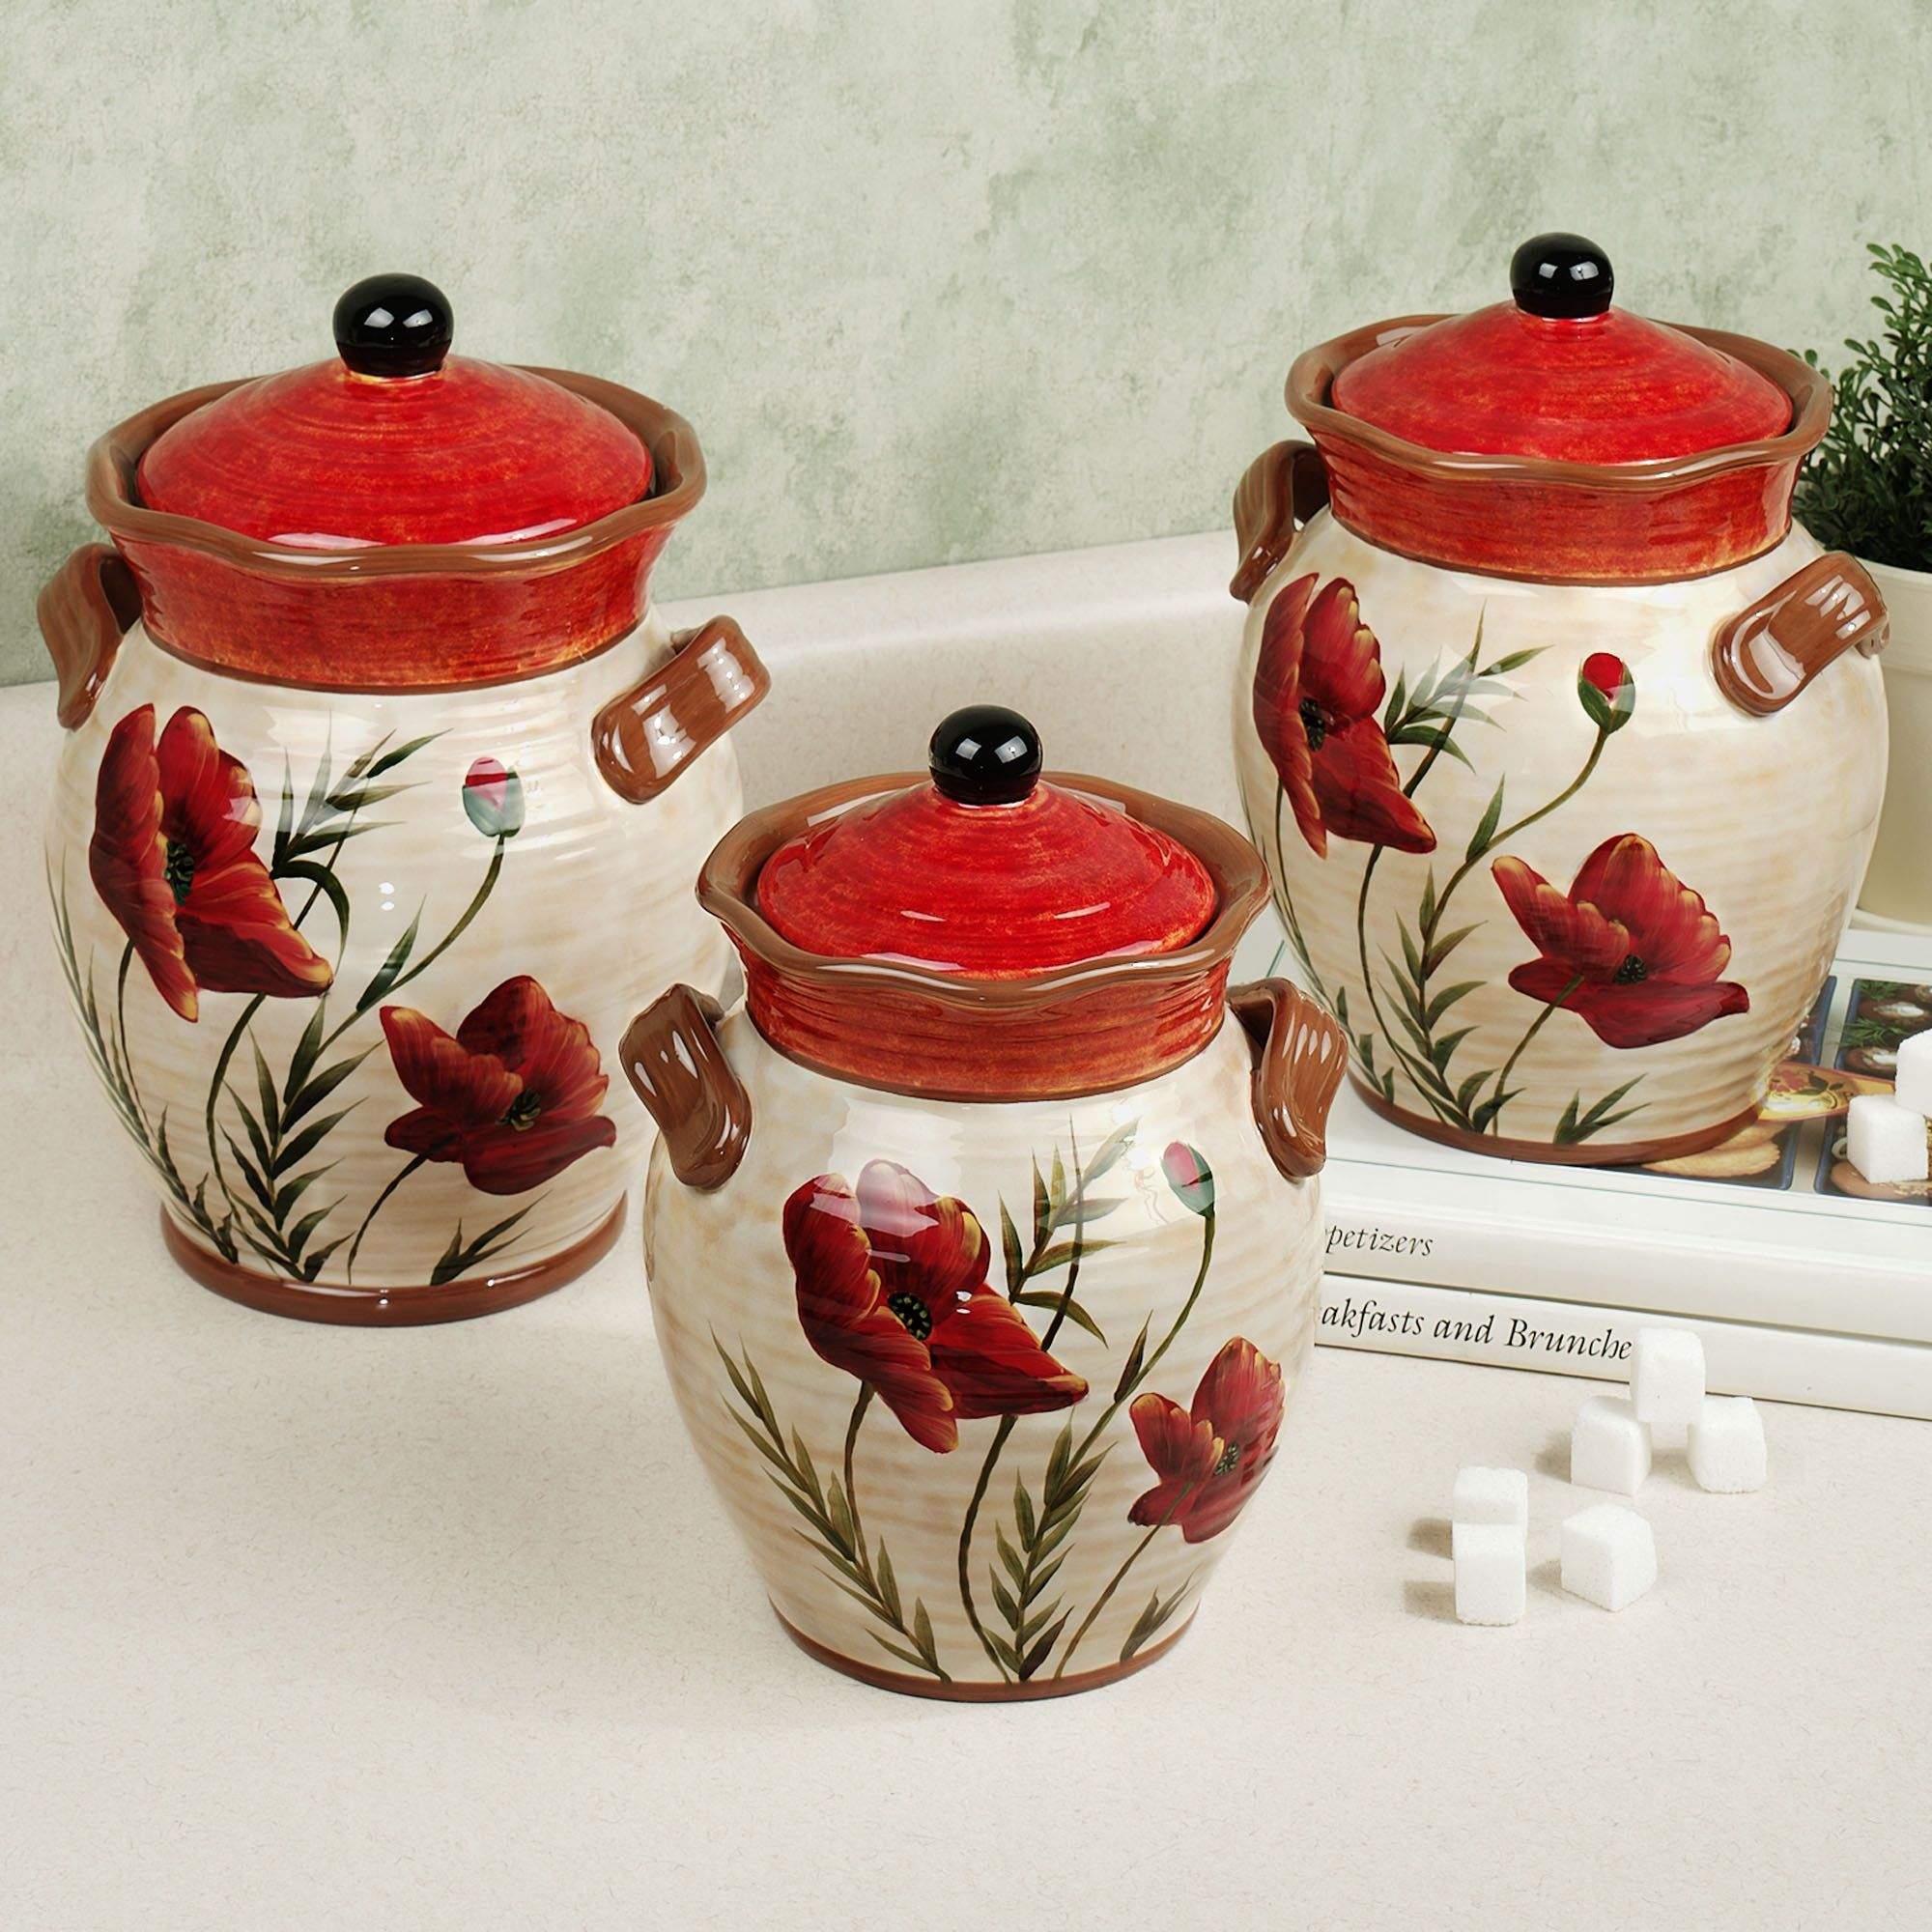 poppies kitchen canister set kitchen theme ideas pinterest poppies kitchen canister set